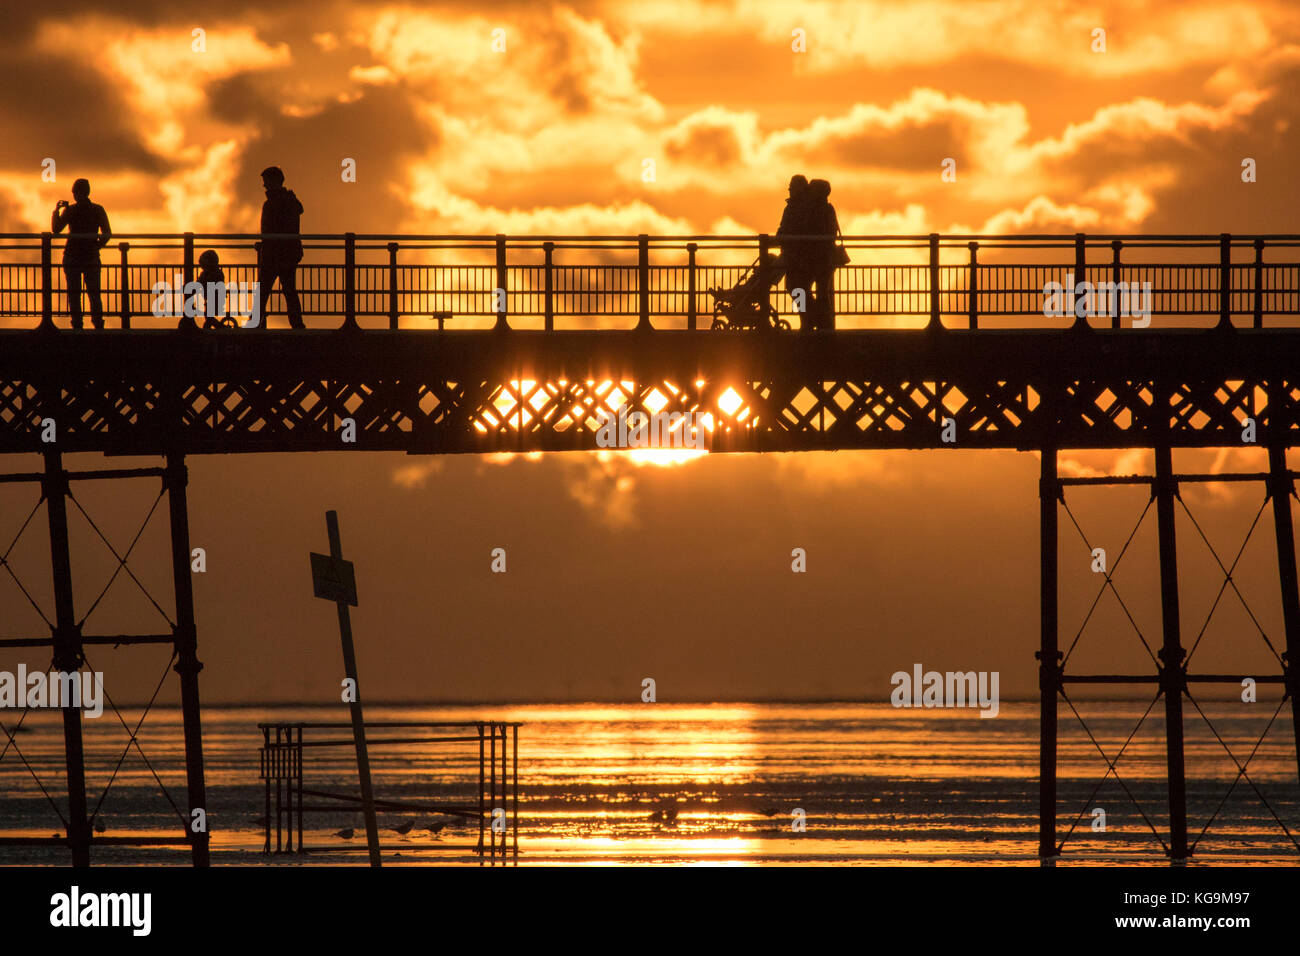 Southport, Merseyside, Sunset over Southport Pier. 5th November ...